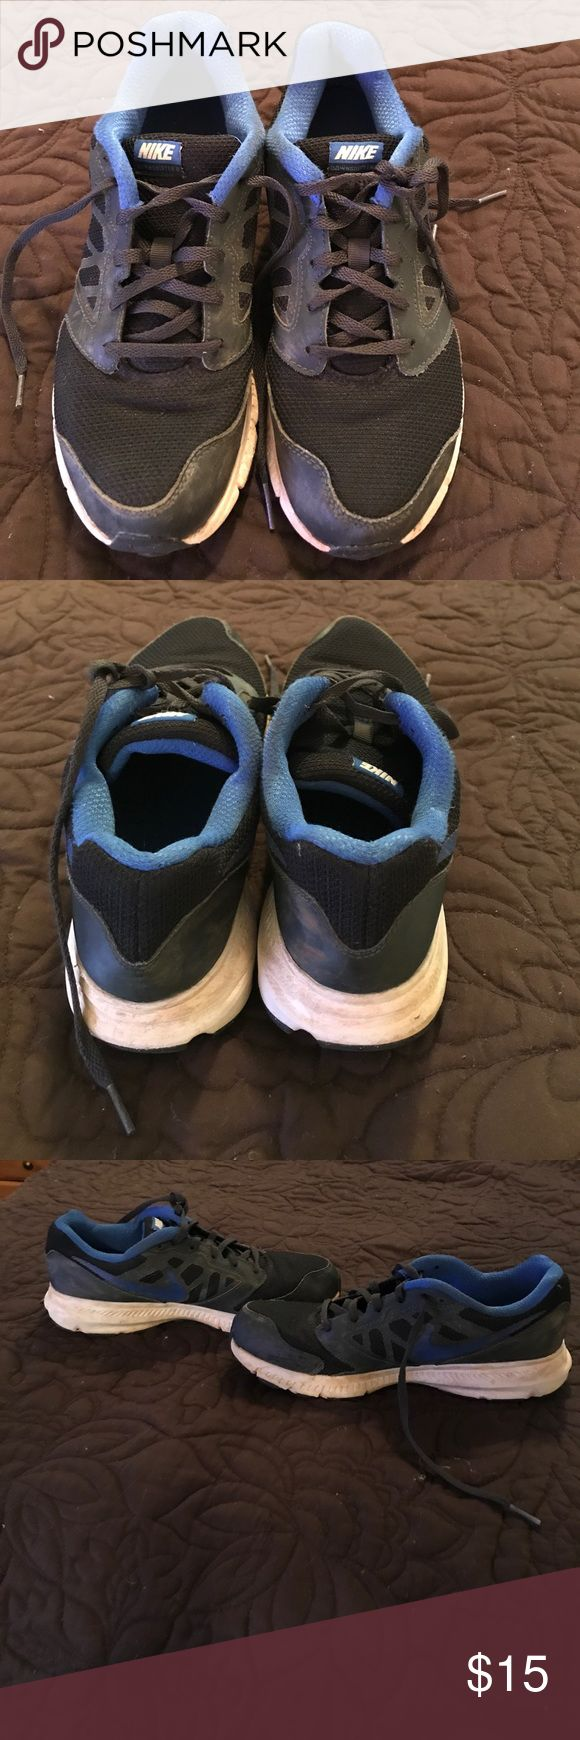 Boys size 7 Nike tennis shoes Gently worn Nike tennis shoes. Boys size 7. These were worn only a few times. They are in used, but very good condition. Shoes Sneakers